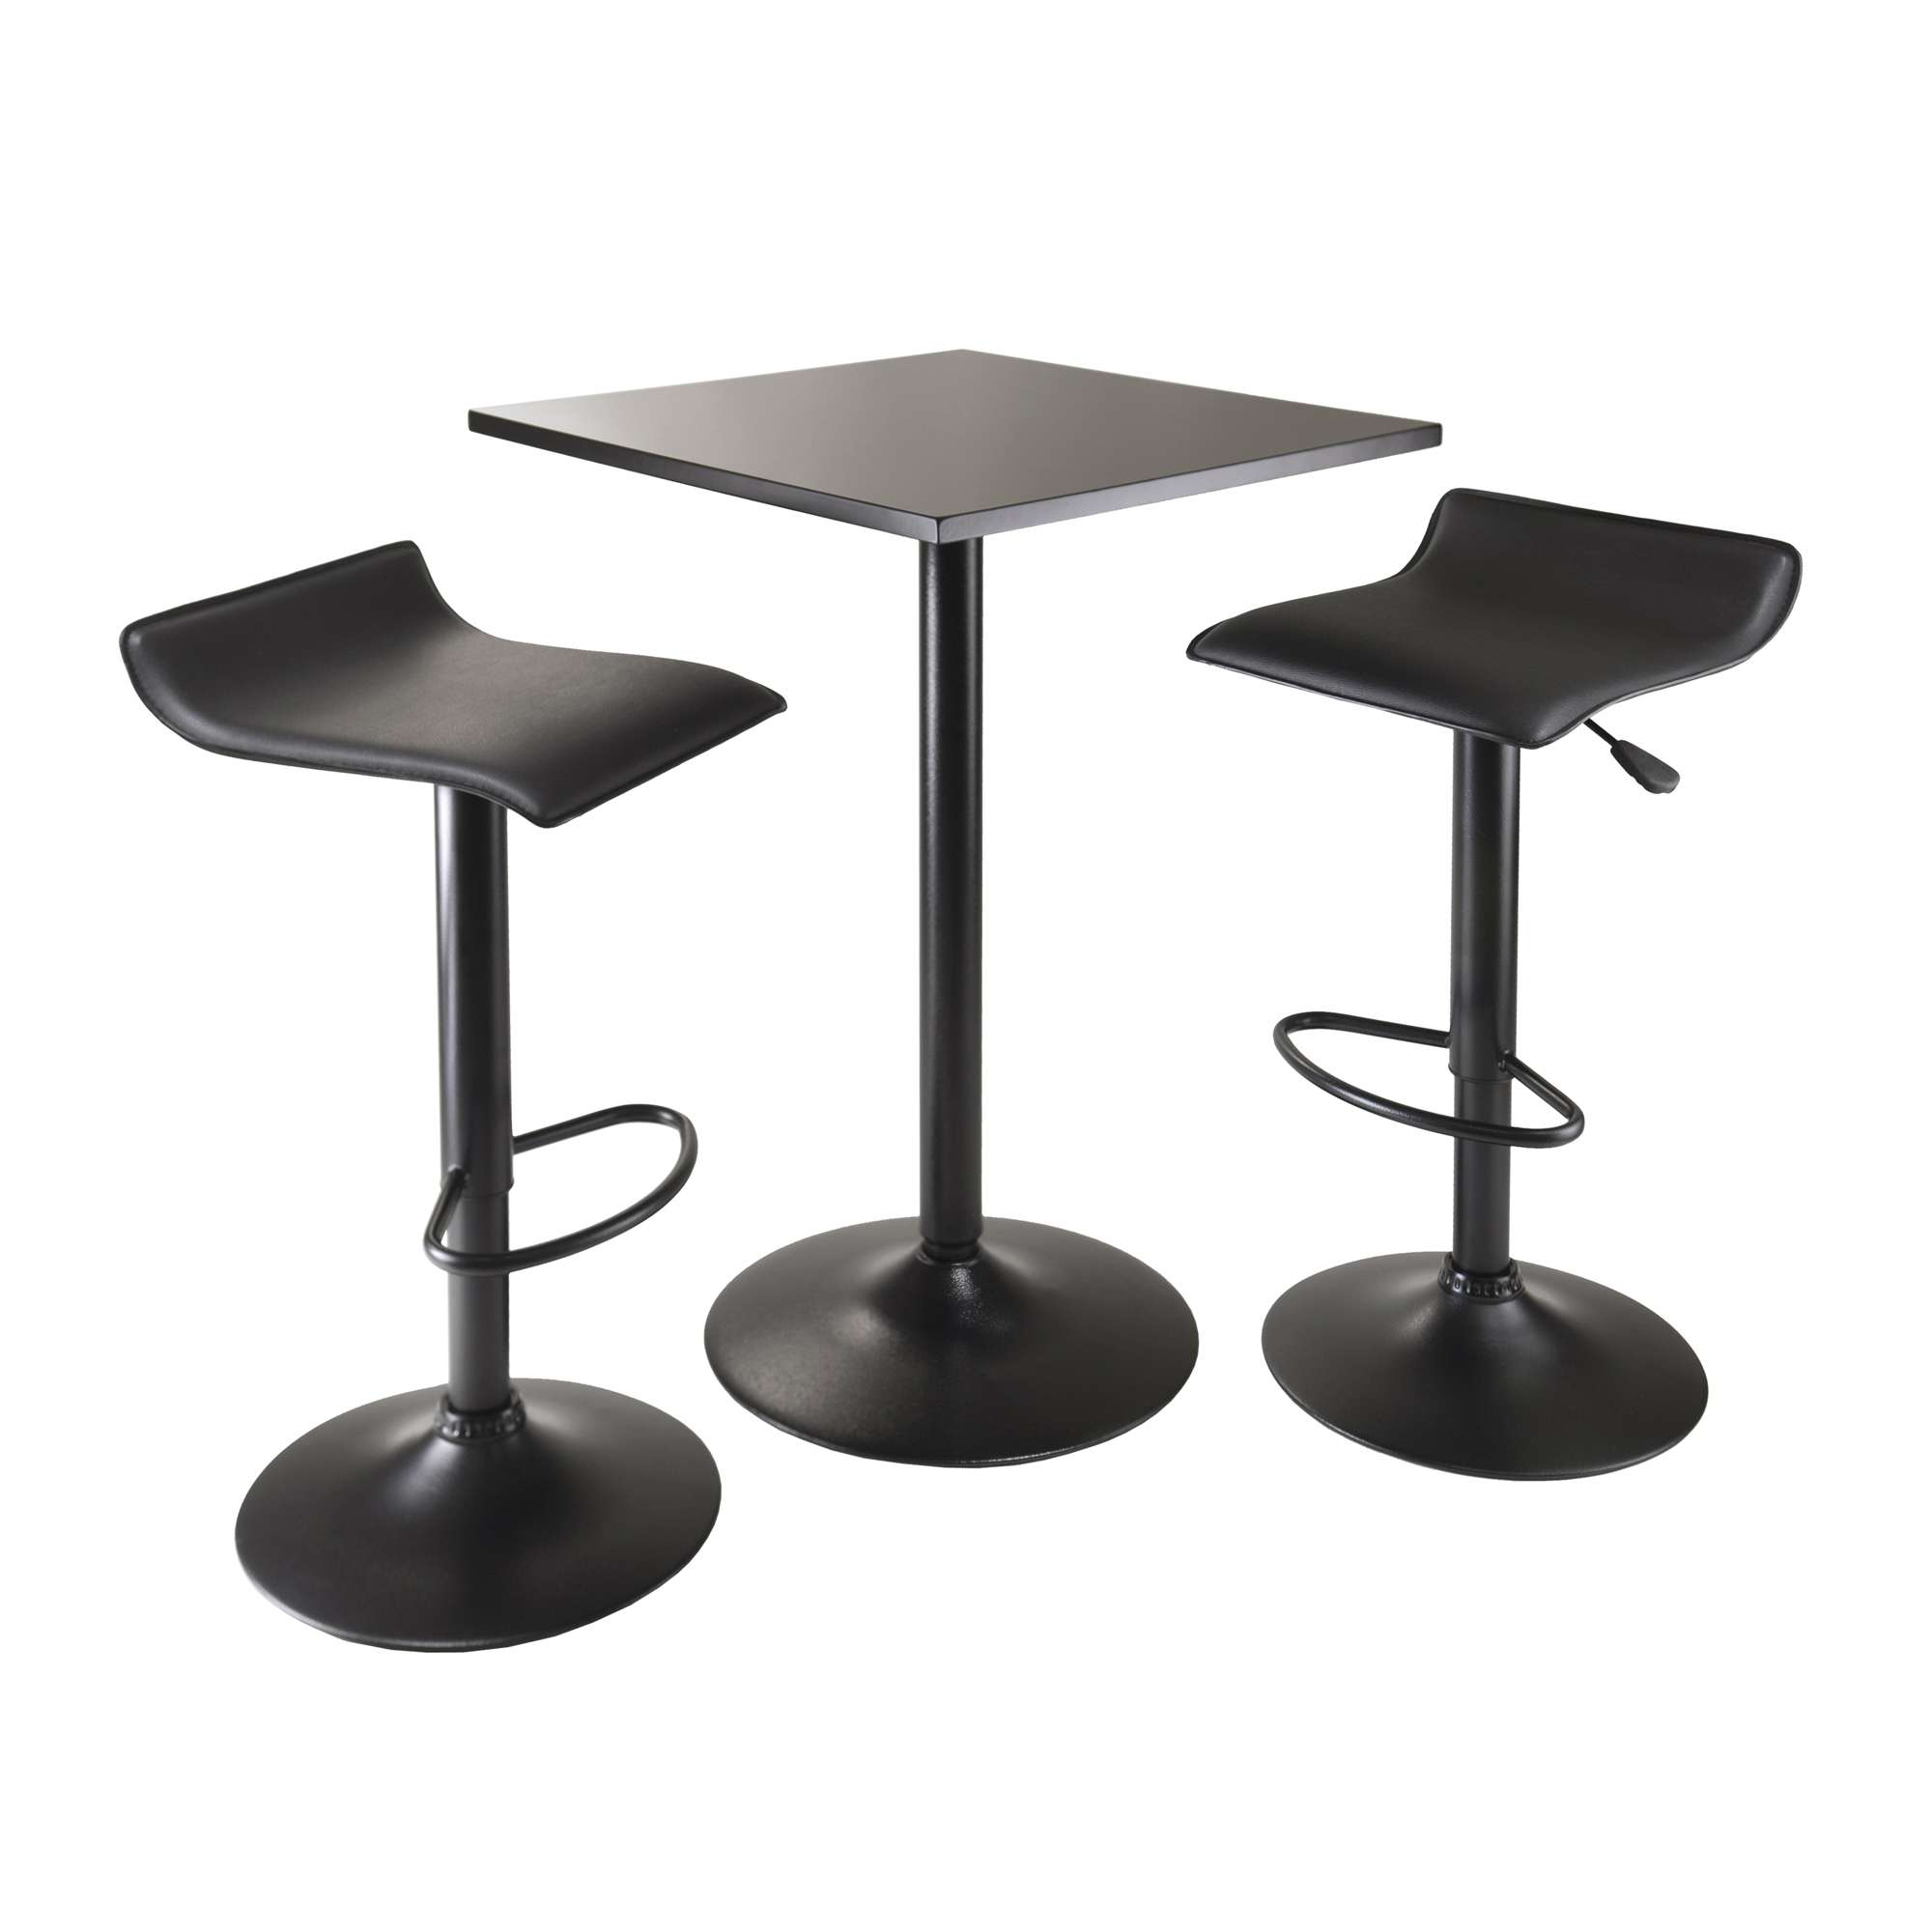 Winsome Wood Obsidian Black 3 Piece Square Table Counter Height Throughout Most Popular Winsome 3 Piece Counter Height Dining Sets (View 19 of 25)